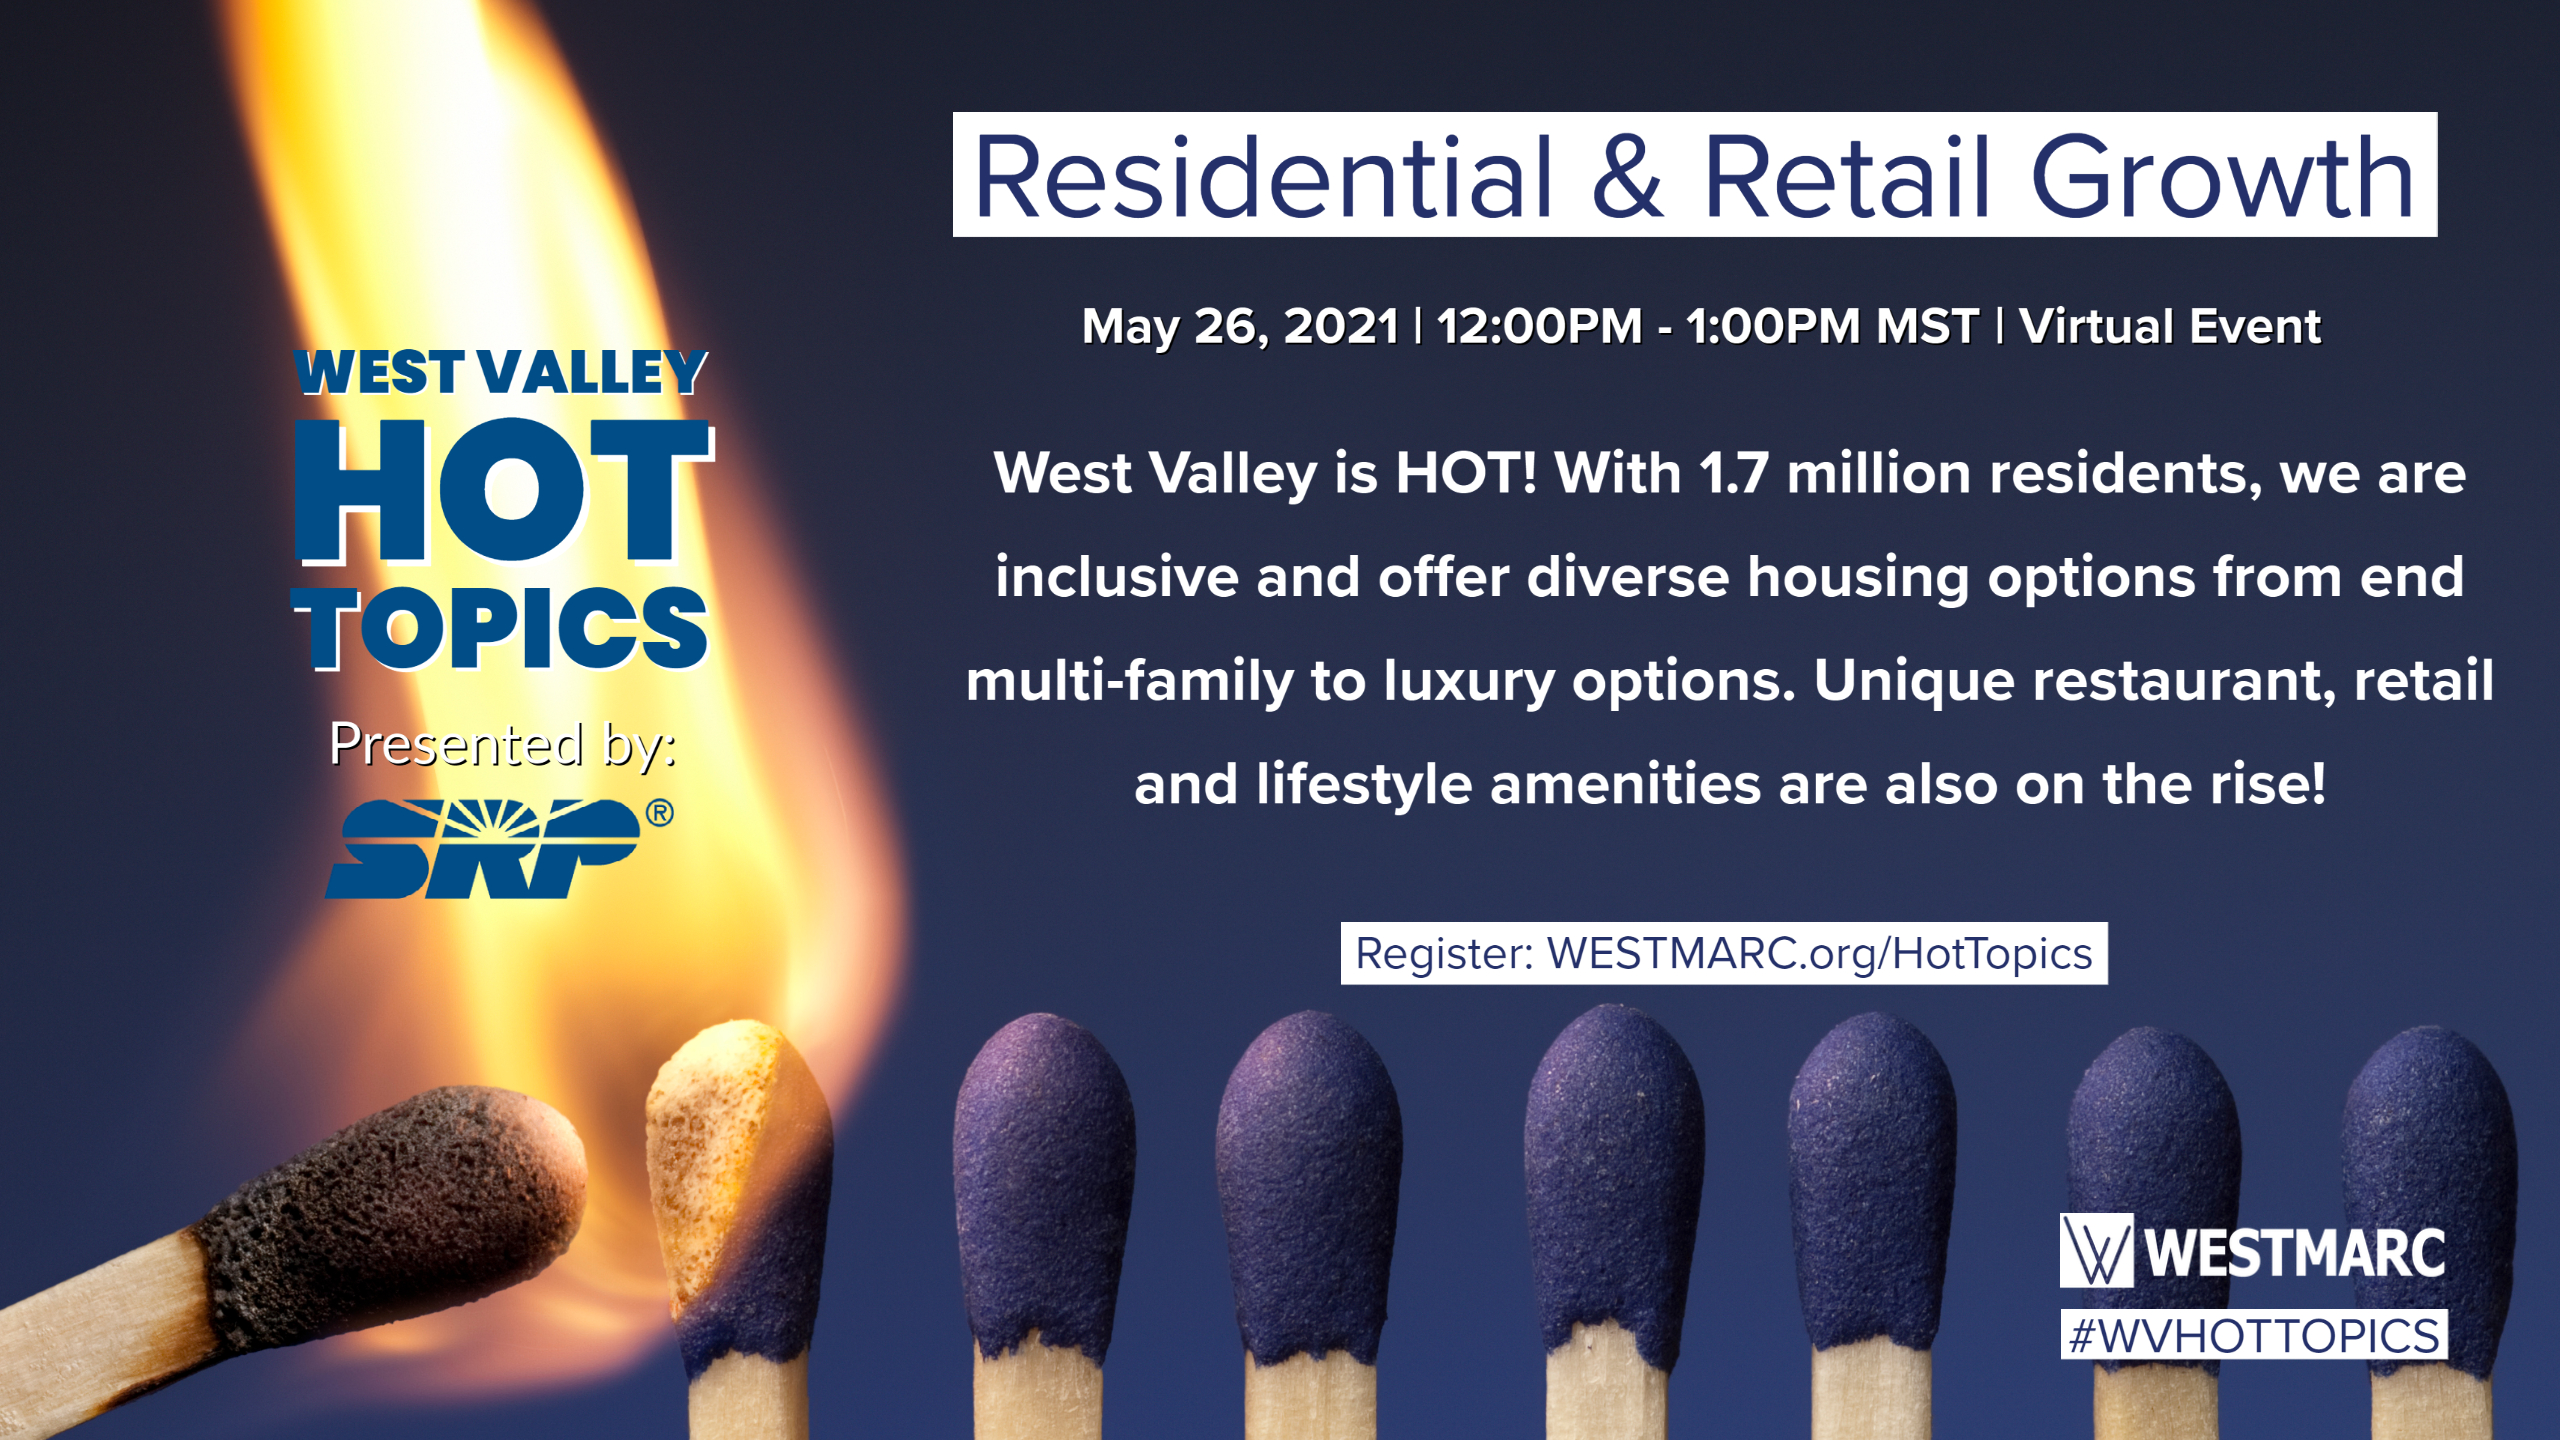 West Valley Hot Topics presented by SRP: Residential & Retail Growth